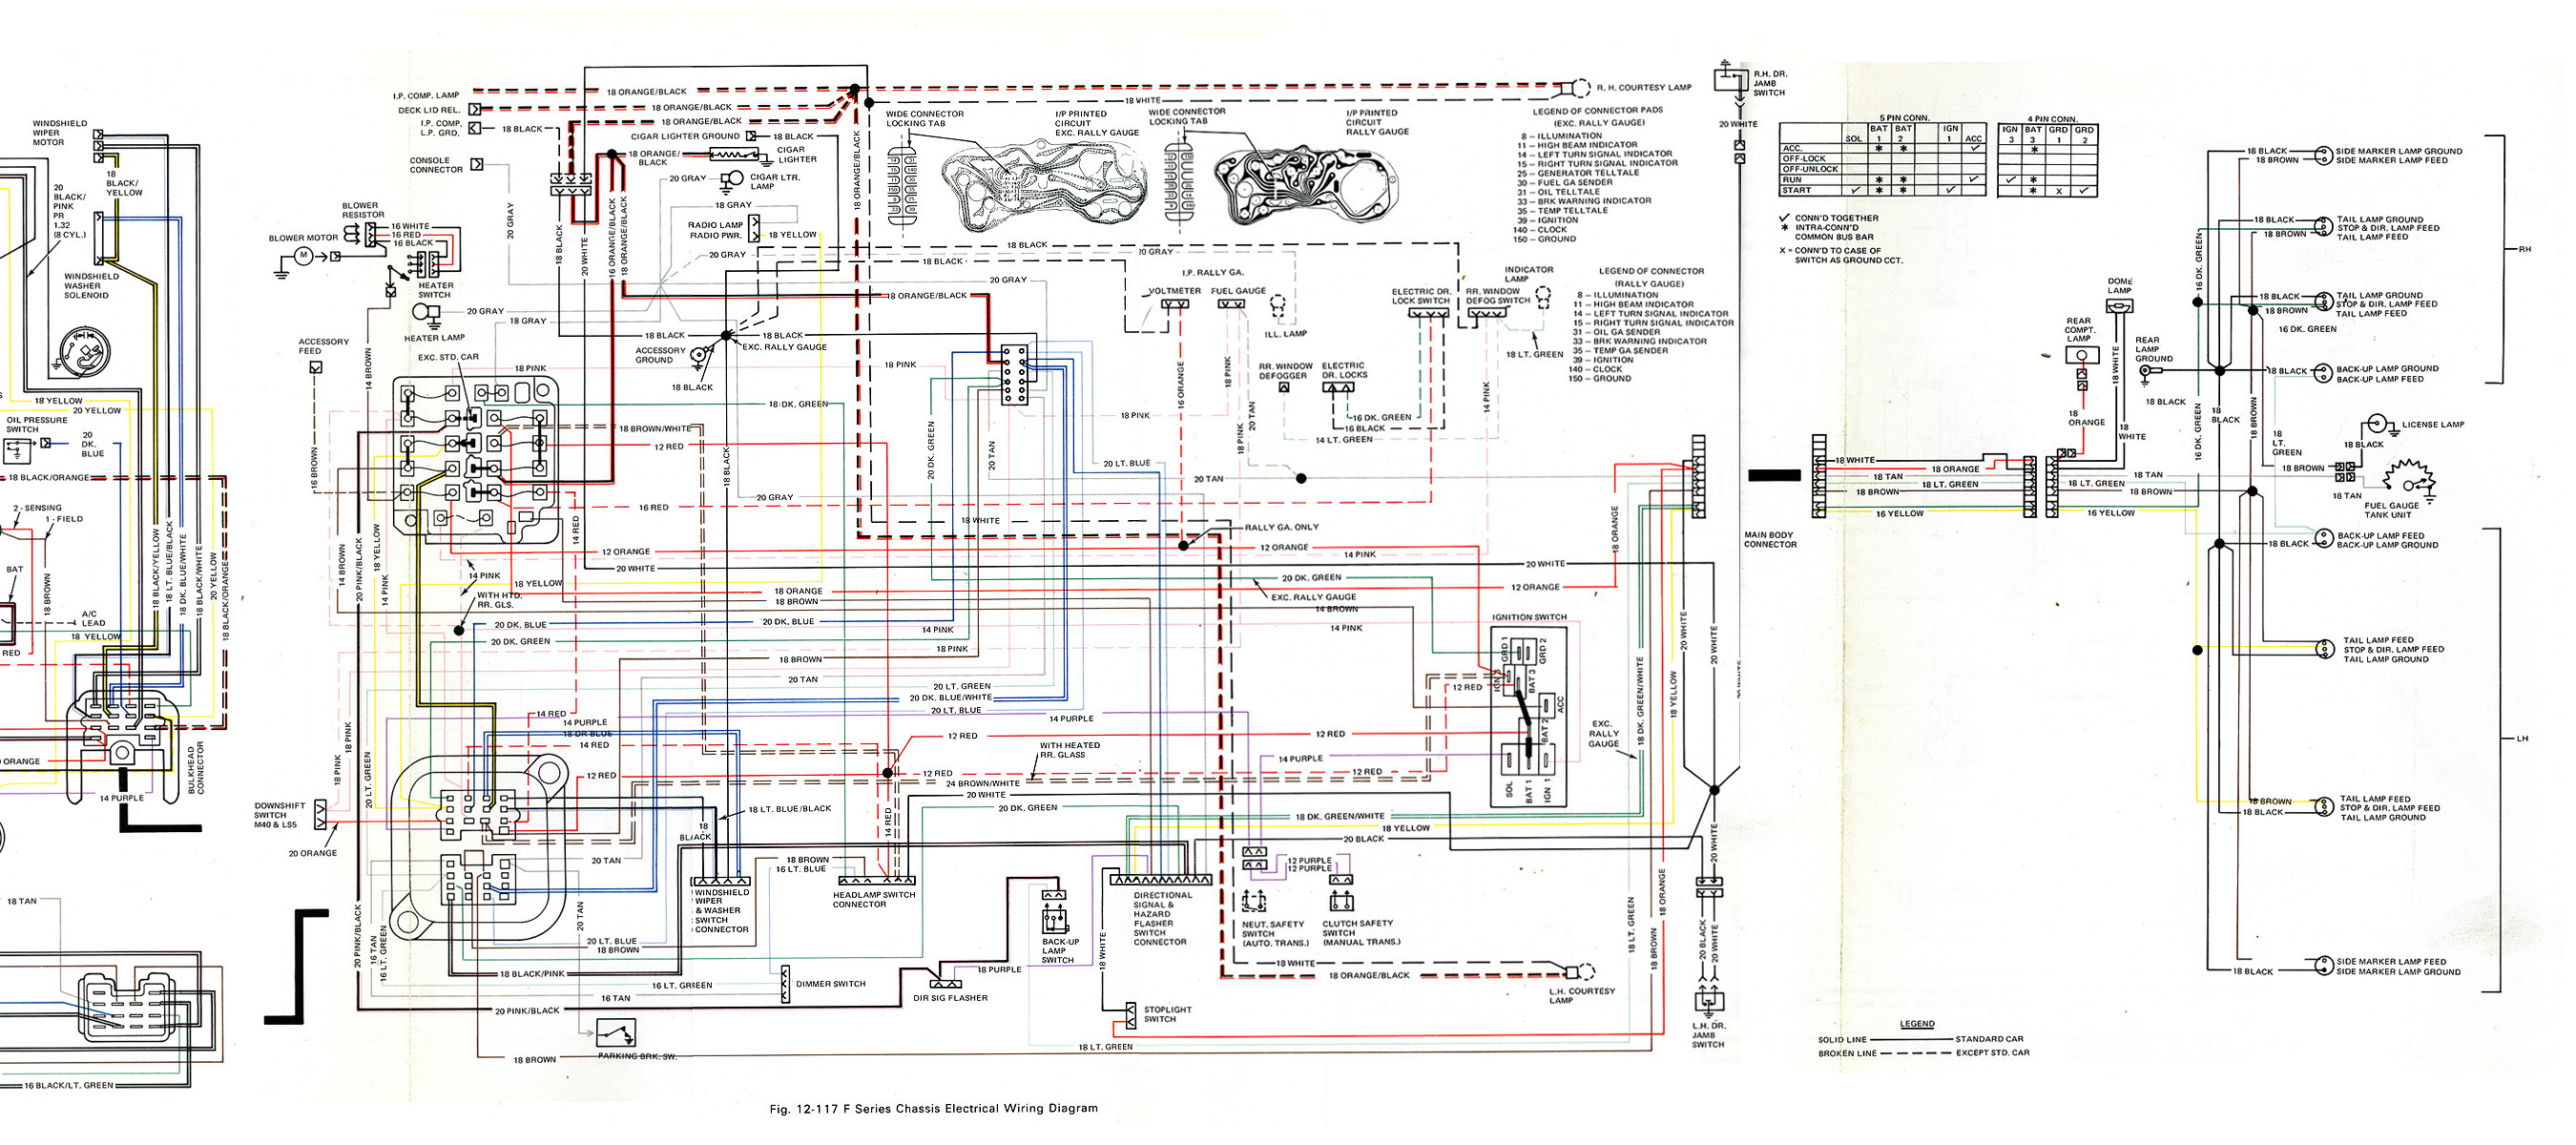 firebird72diagram birdfire com library, document 1978 pontiac firebird wiring diagram at gsmportal.co